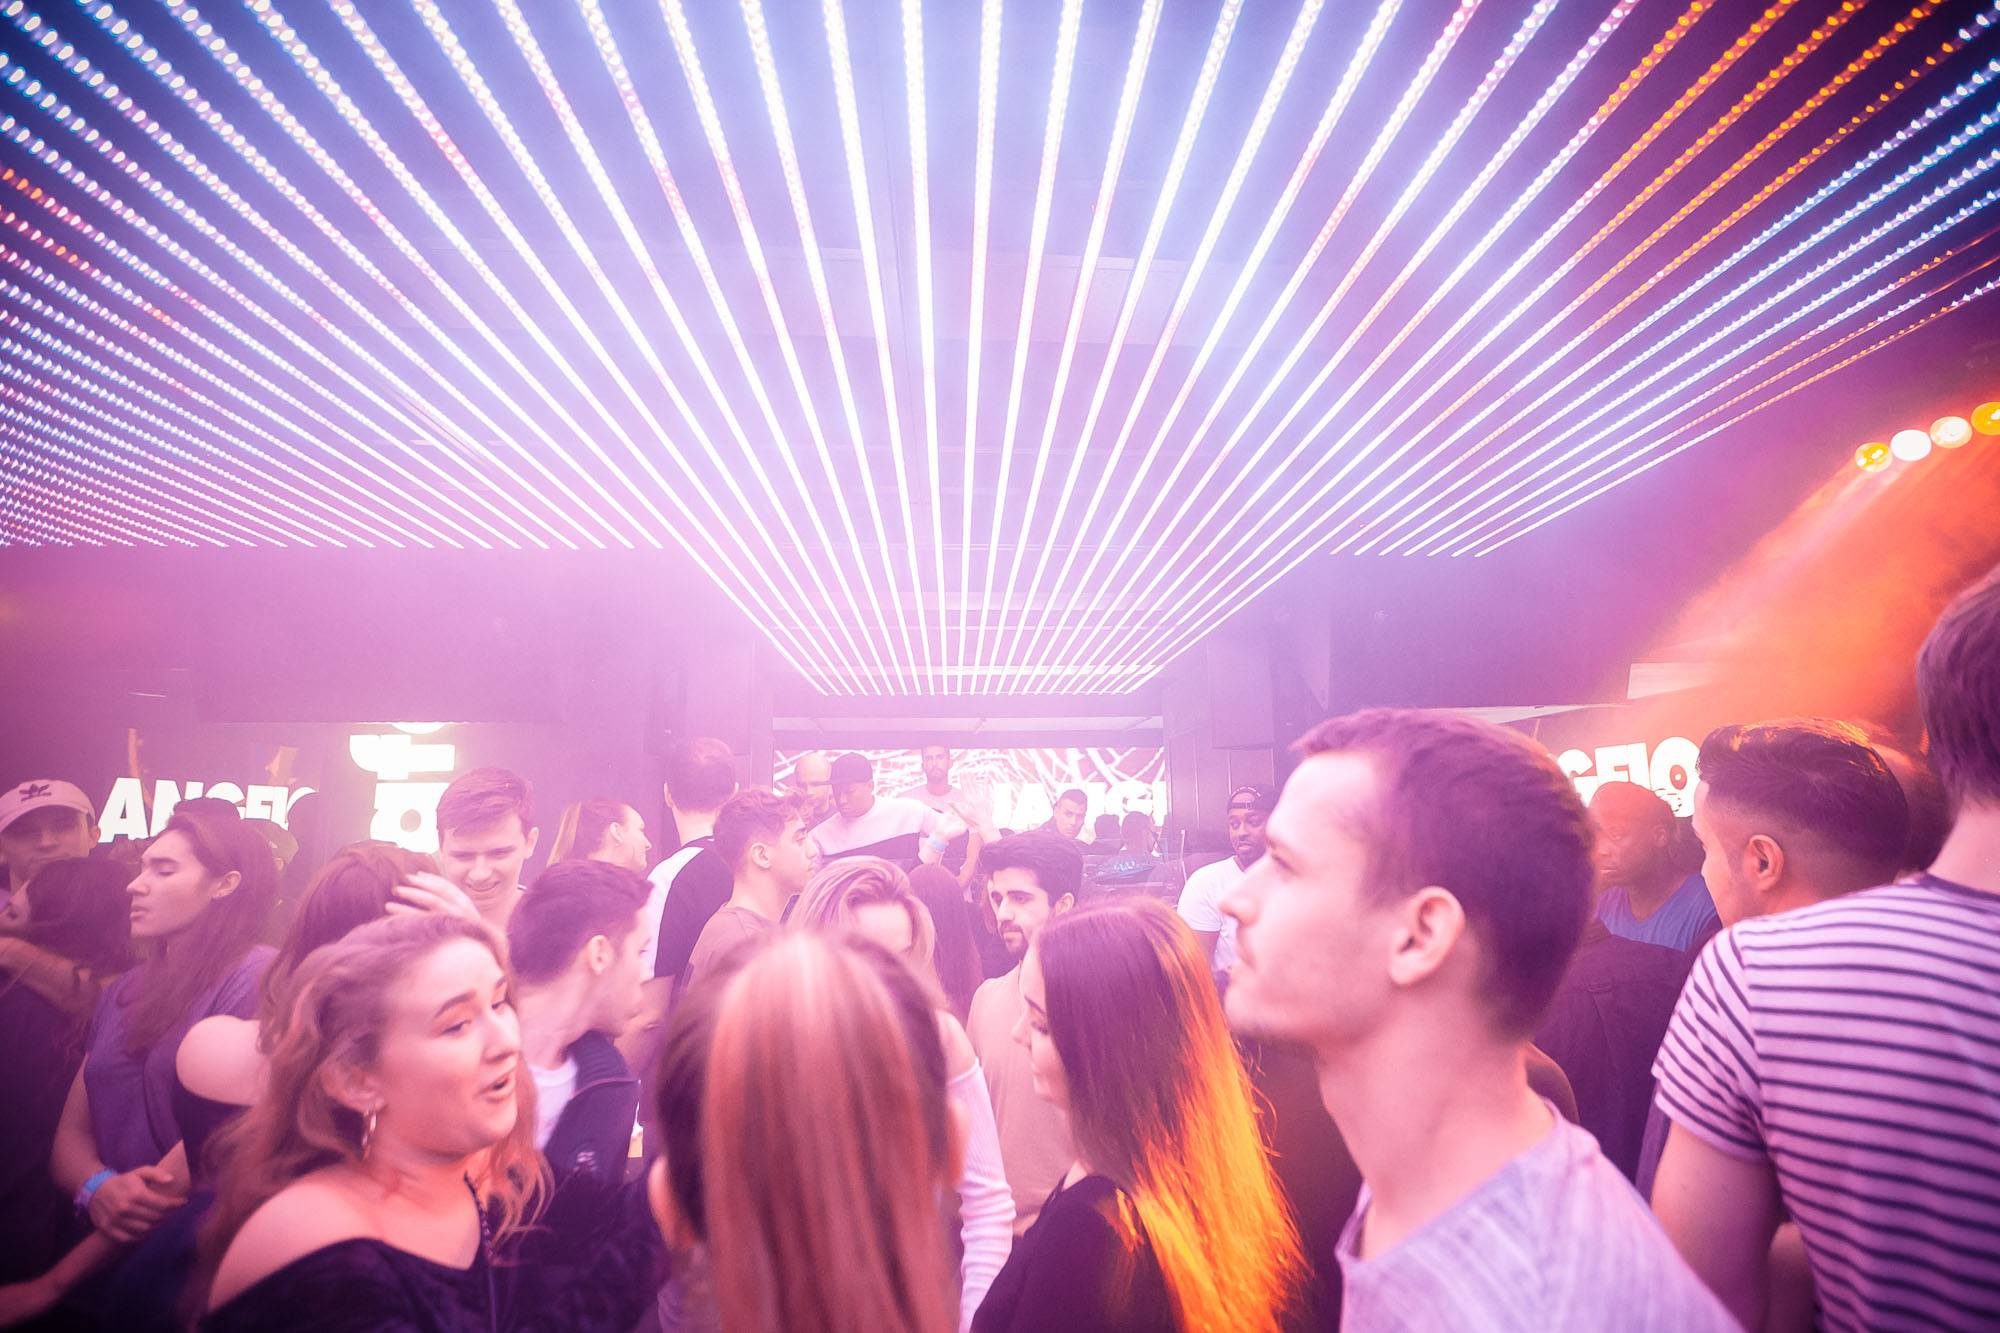 Crowded dance area in night club Trafo.